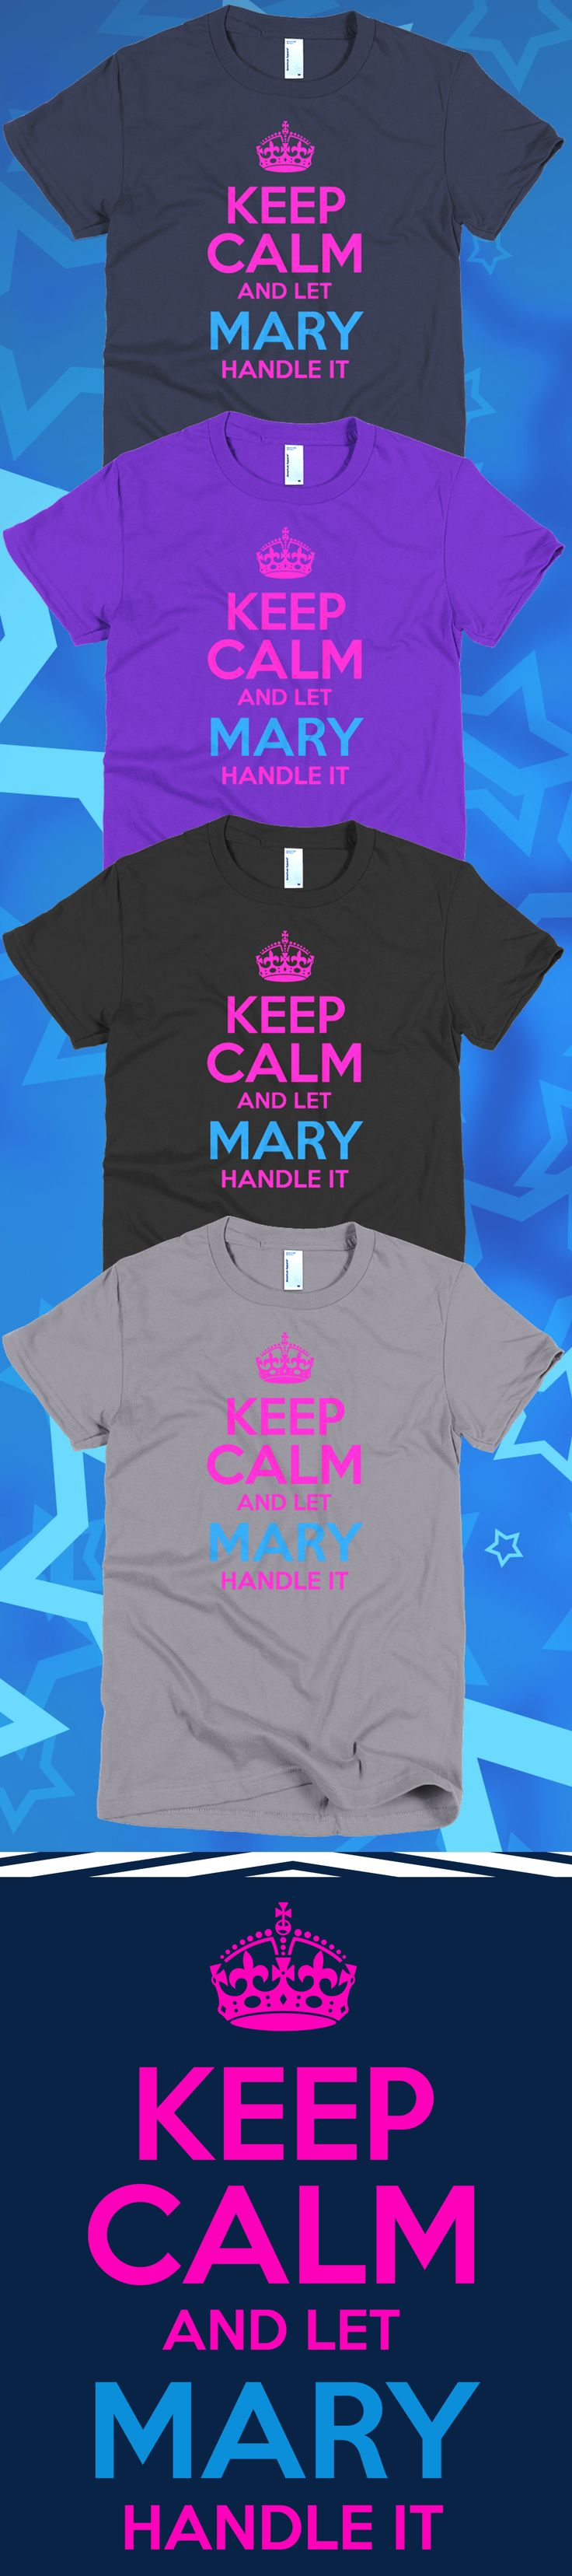 Do you know someone named Mary?! Check out this awesome Keep Calm and Let Mary Handle It t-shirt you will not find anywhere else. Not sold in stores and only 2 days left for free shipping! Grab yours or gift it to a friend, you will both love it 😘